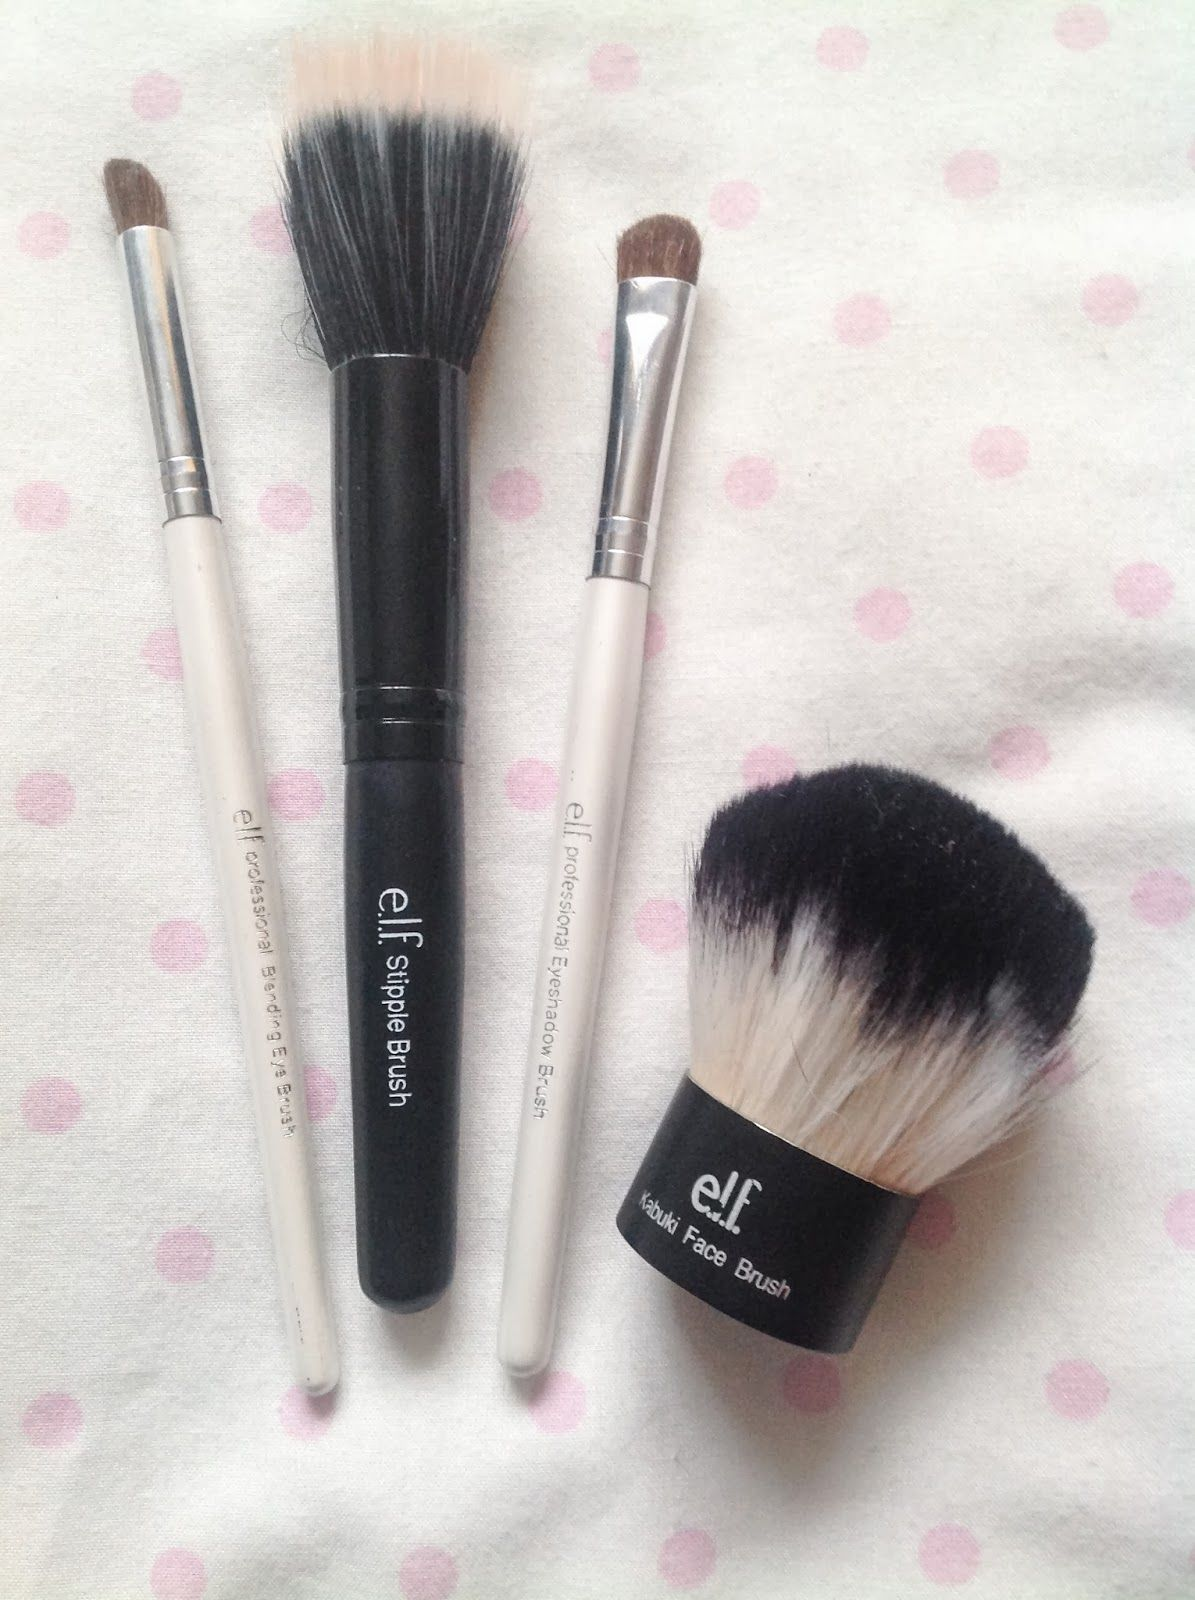 To buy or not to buy // ELF brushes // review • Elf